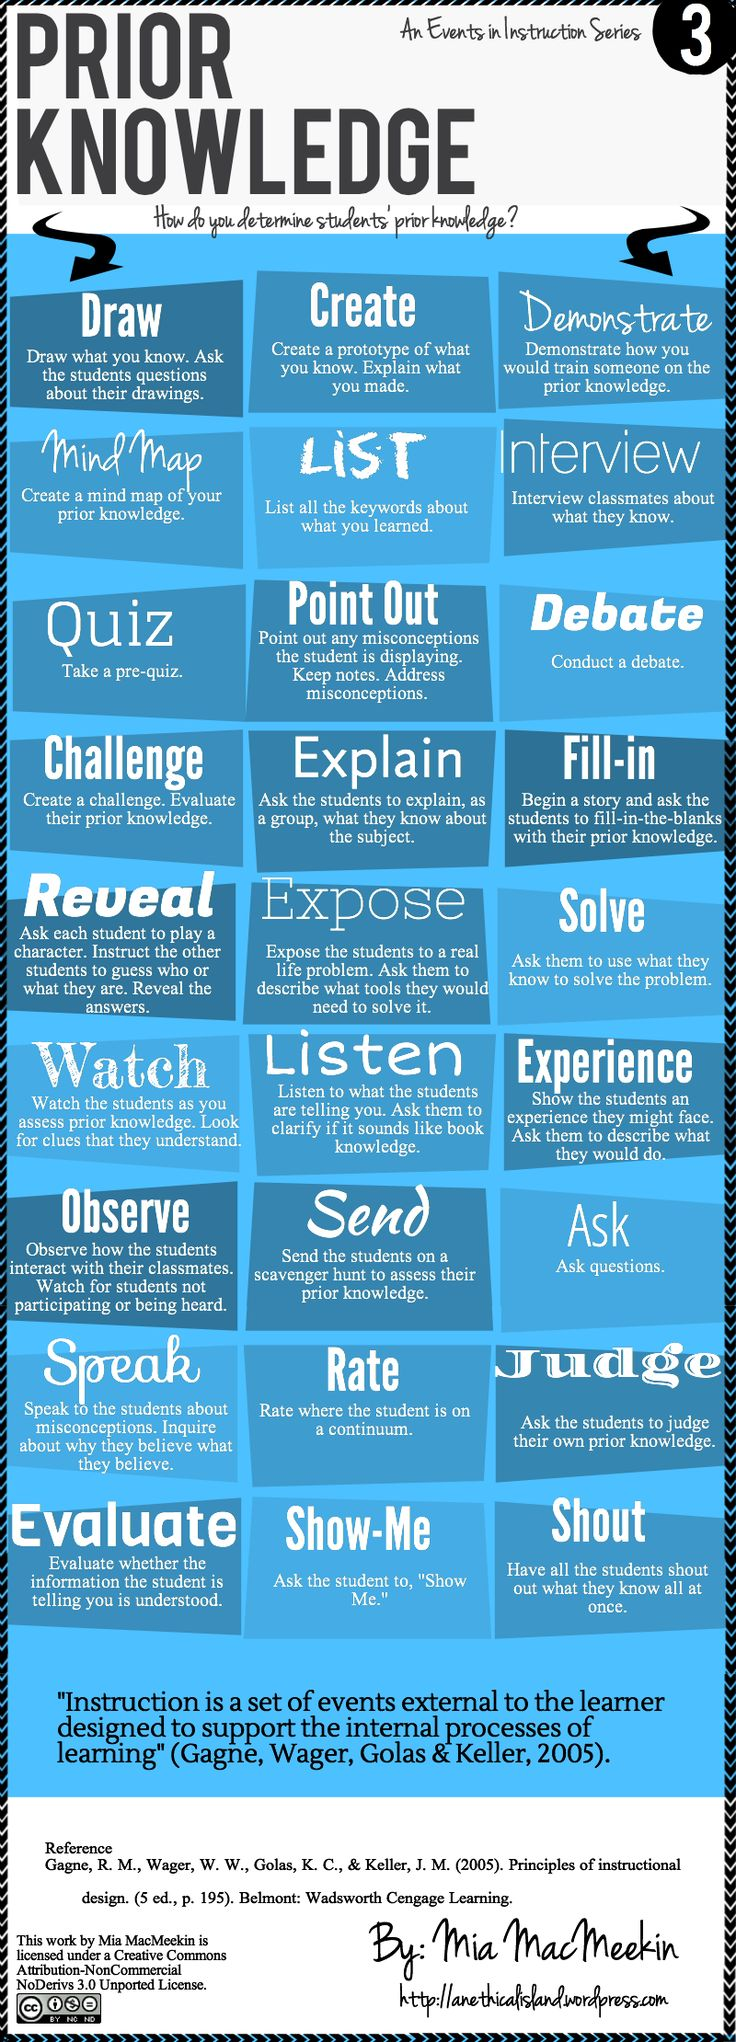 How do you determine a student's prior knowledge? Here are some great ideas!